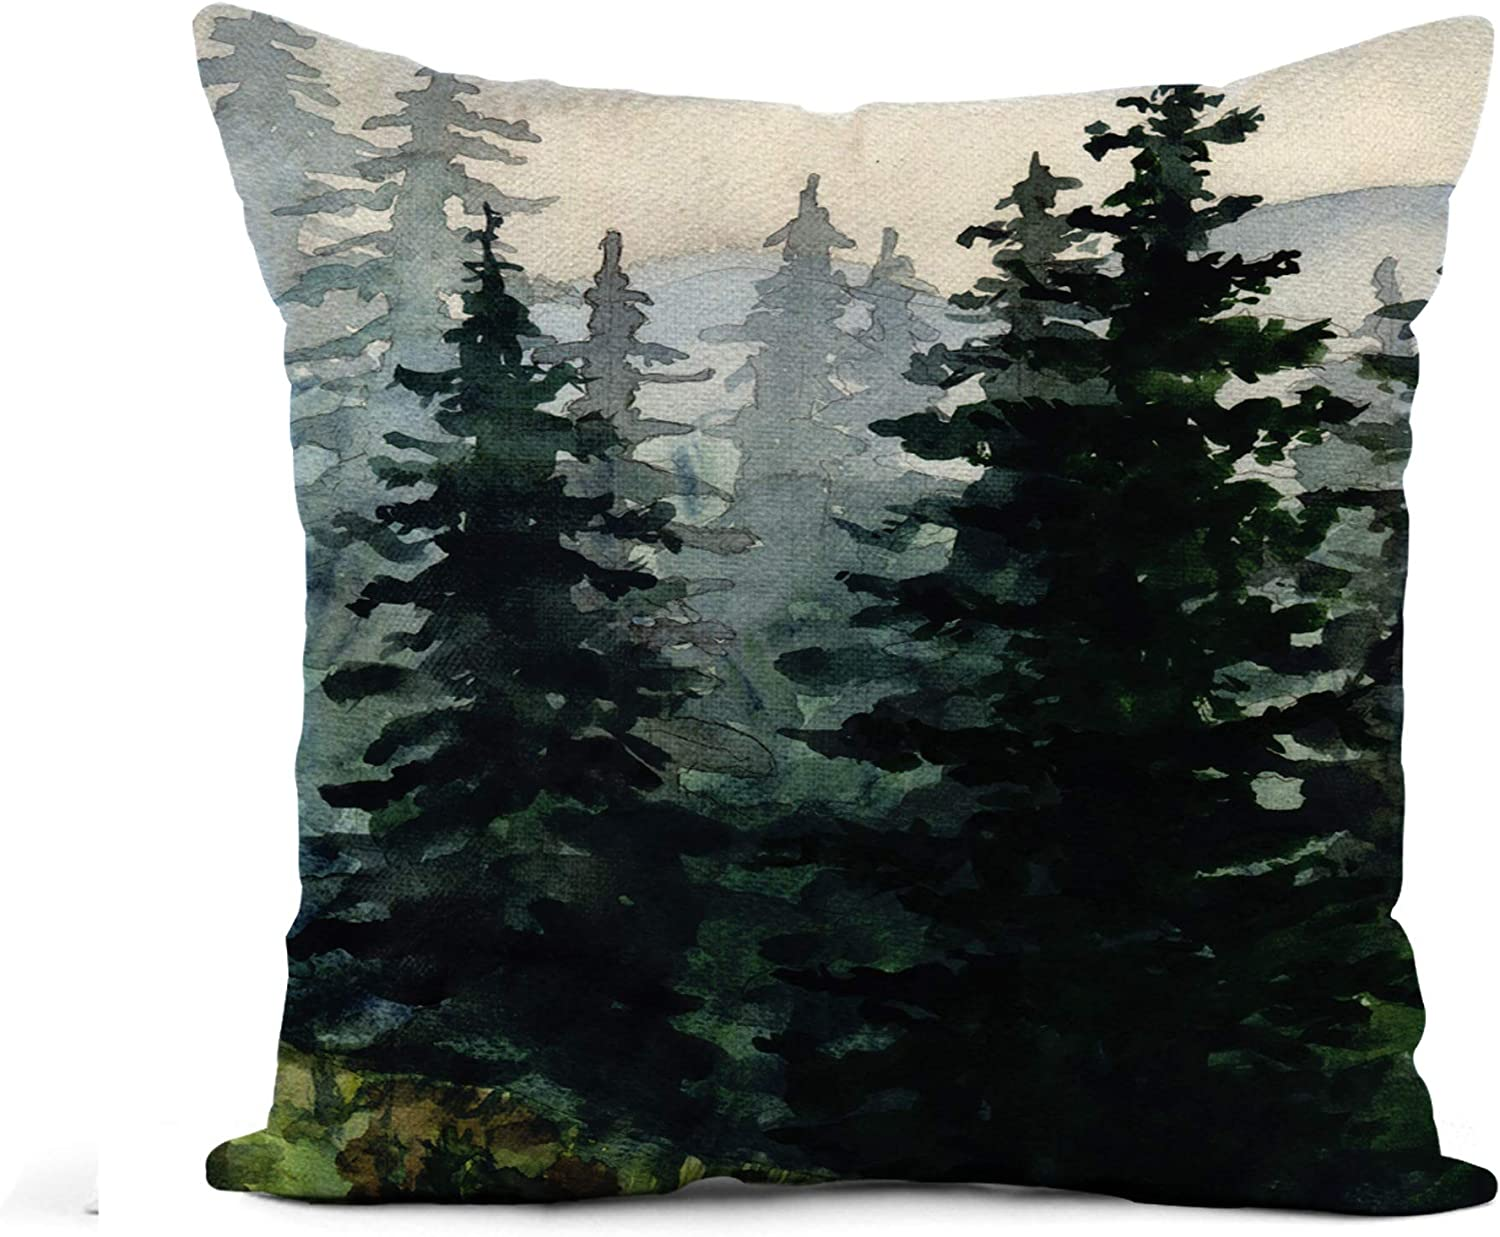 Awowee Flax Throw Pillow Cover Blue Winter Watercolor Landscape Pine Forest Mountains Alaska Artistic 16x16 Inches Pillowcase Home Decor Square Cotton Linen Pillow Case Cushion Cover